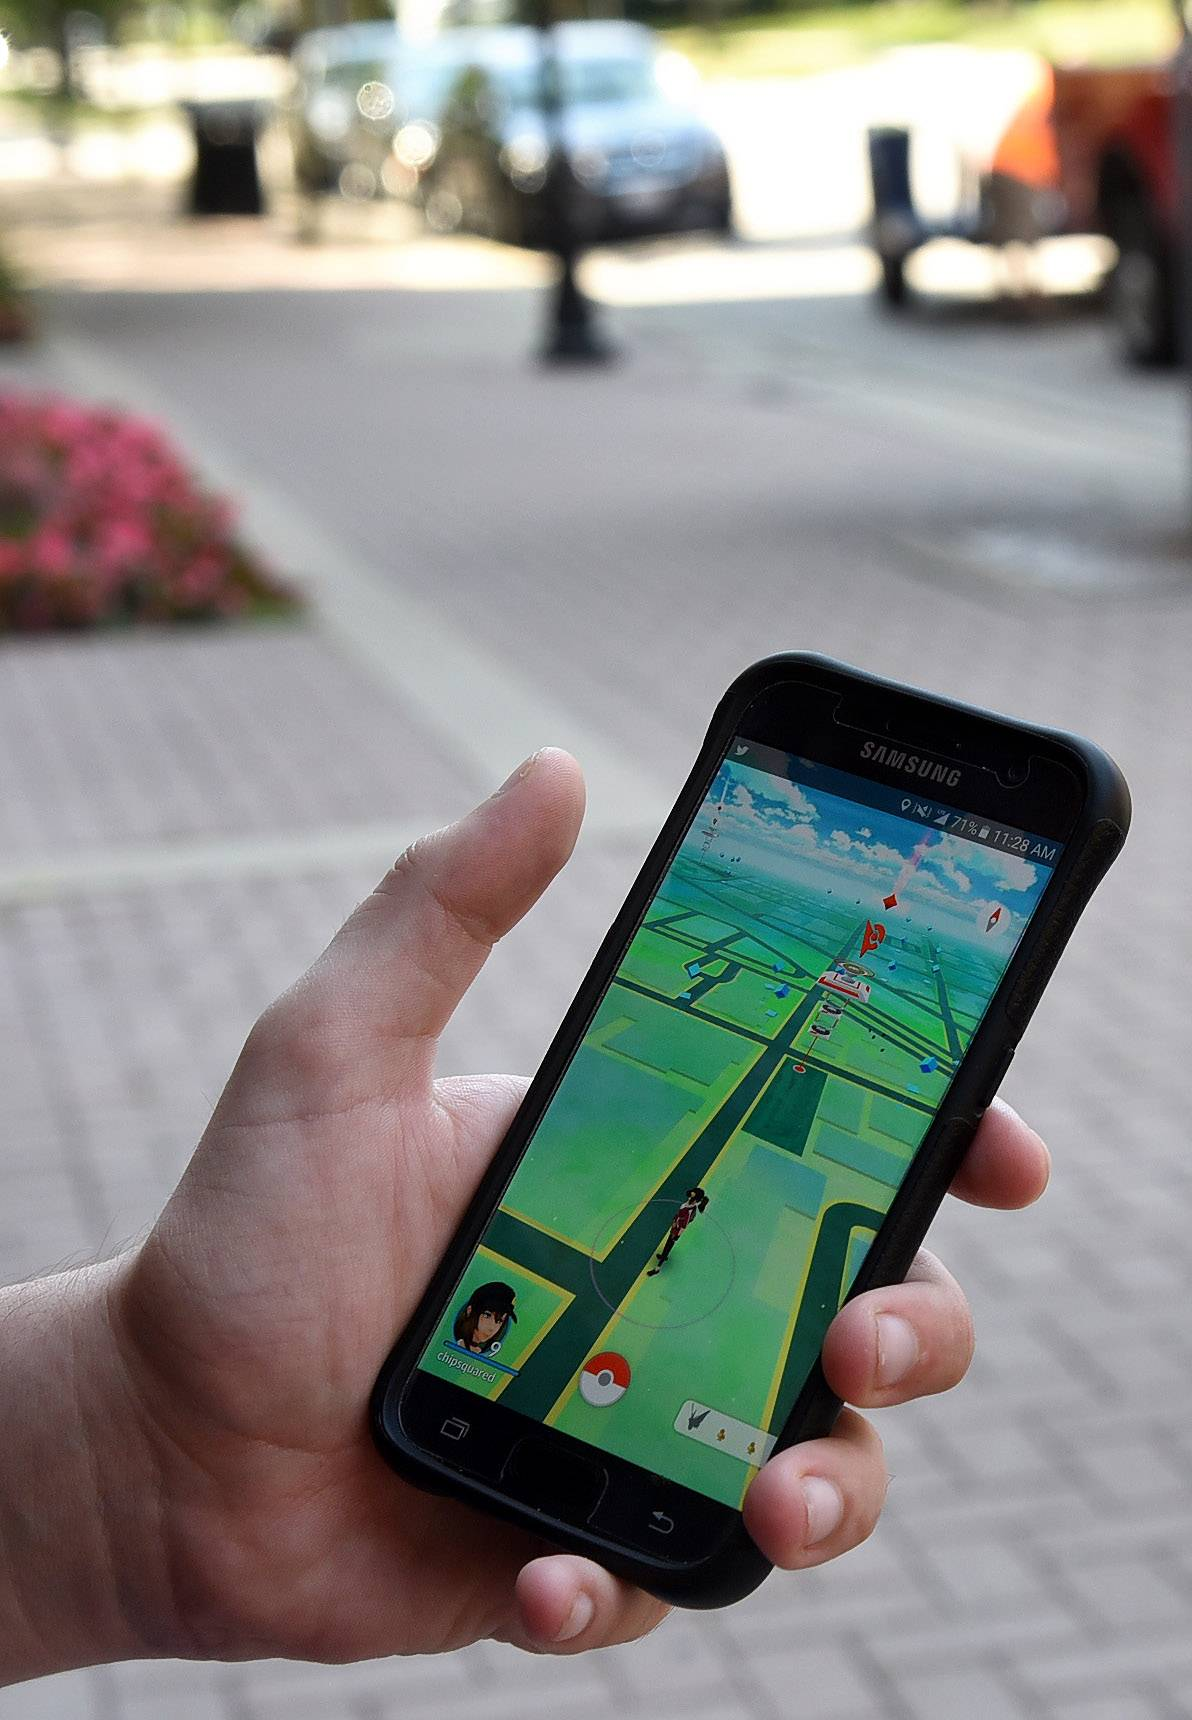 Pokemon Go gamers to gather Saturday in Arlington Heights